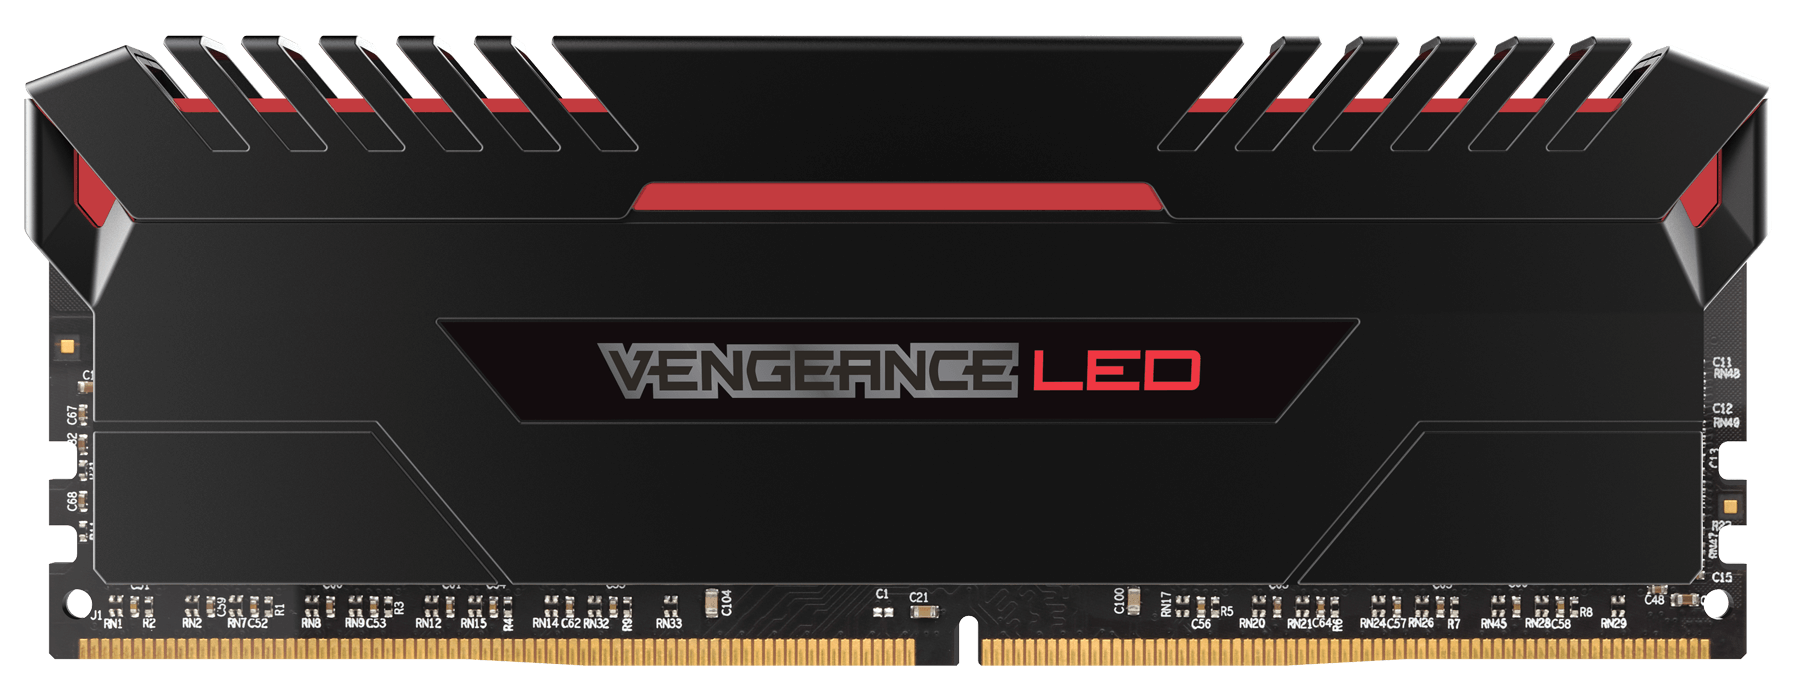 Memorie Desktop Corsair Vengeance LED 16GB (2 x 8GB) DDR4 3200MHz Red